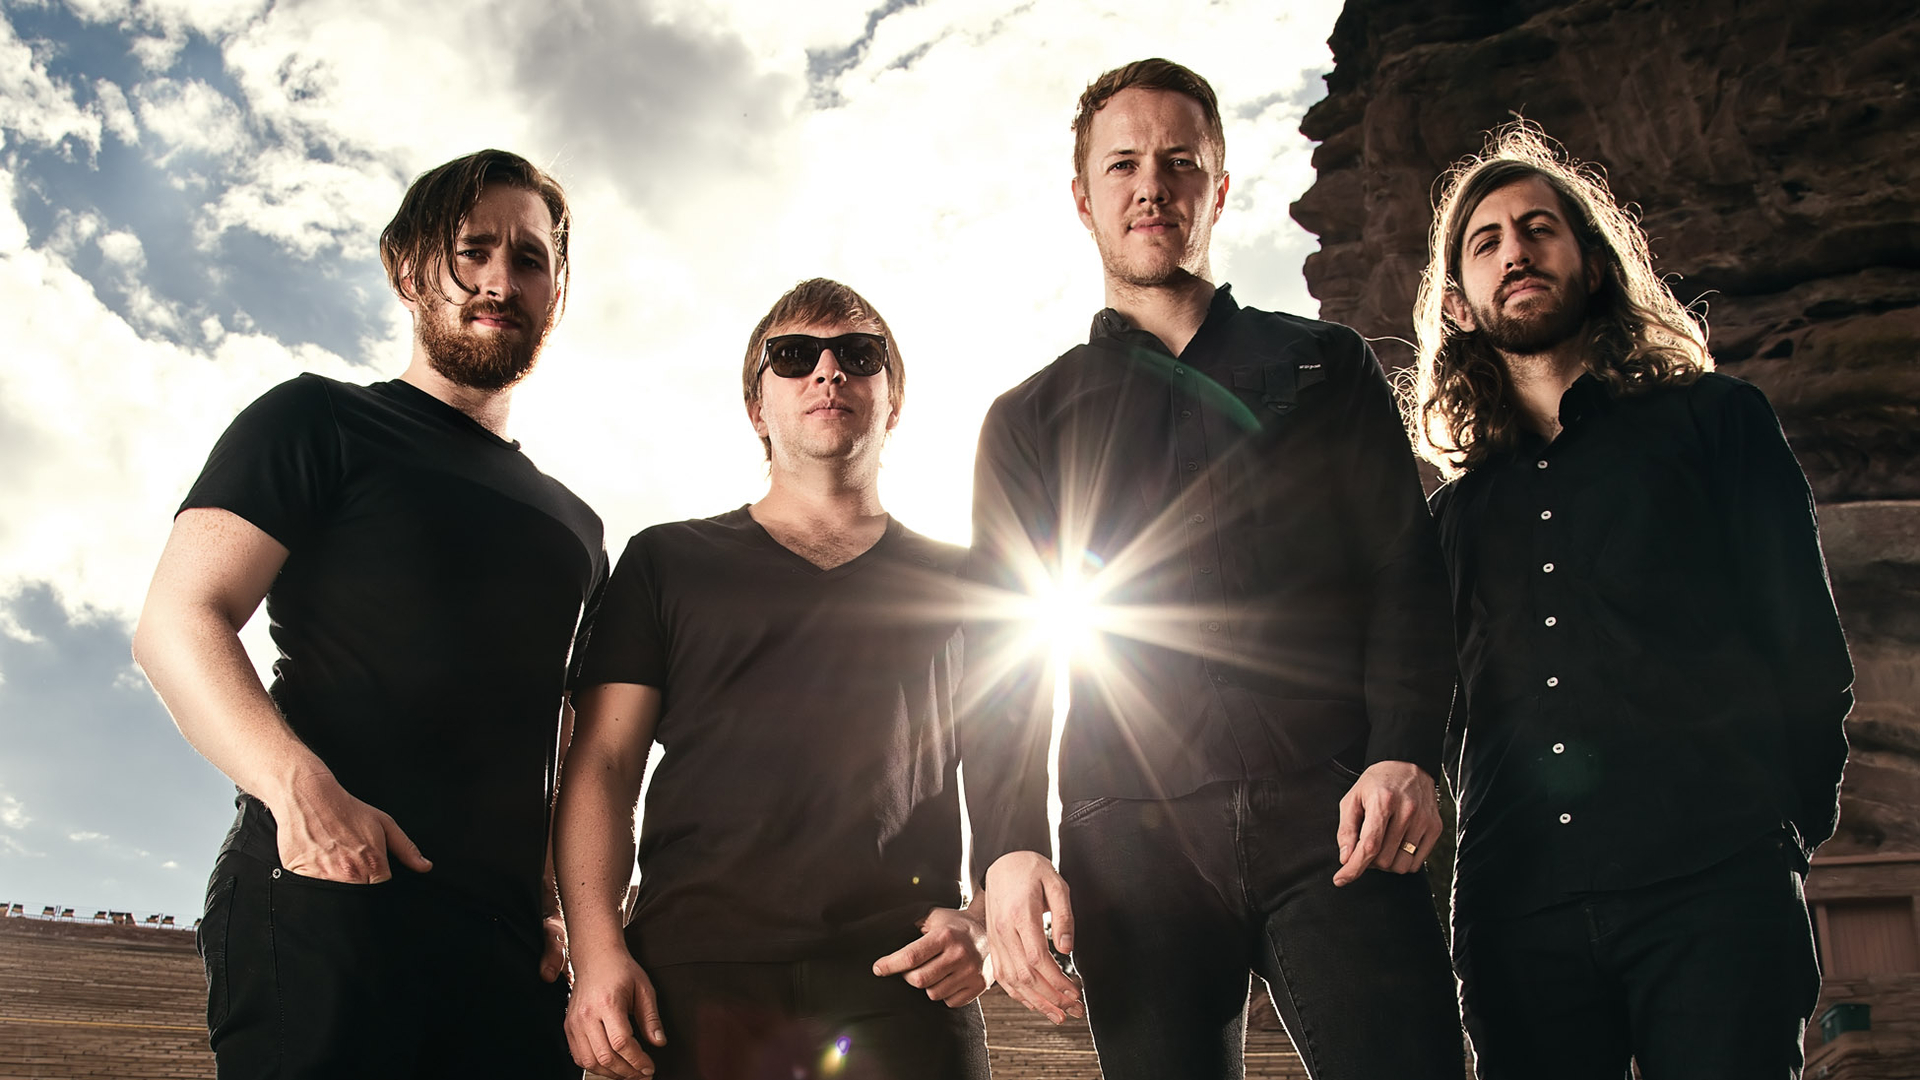 imagine dragons hd wallpaper 61635